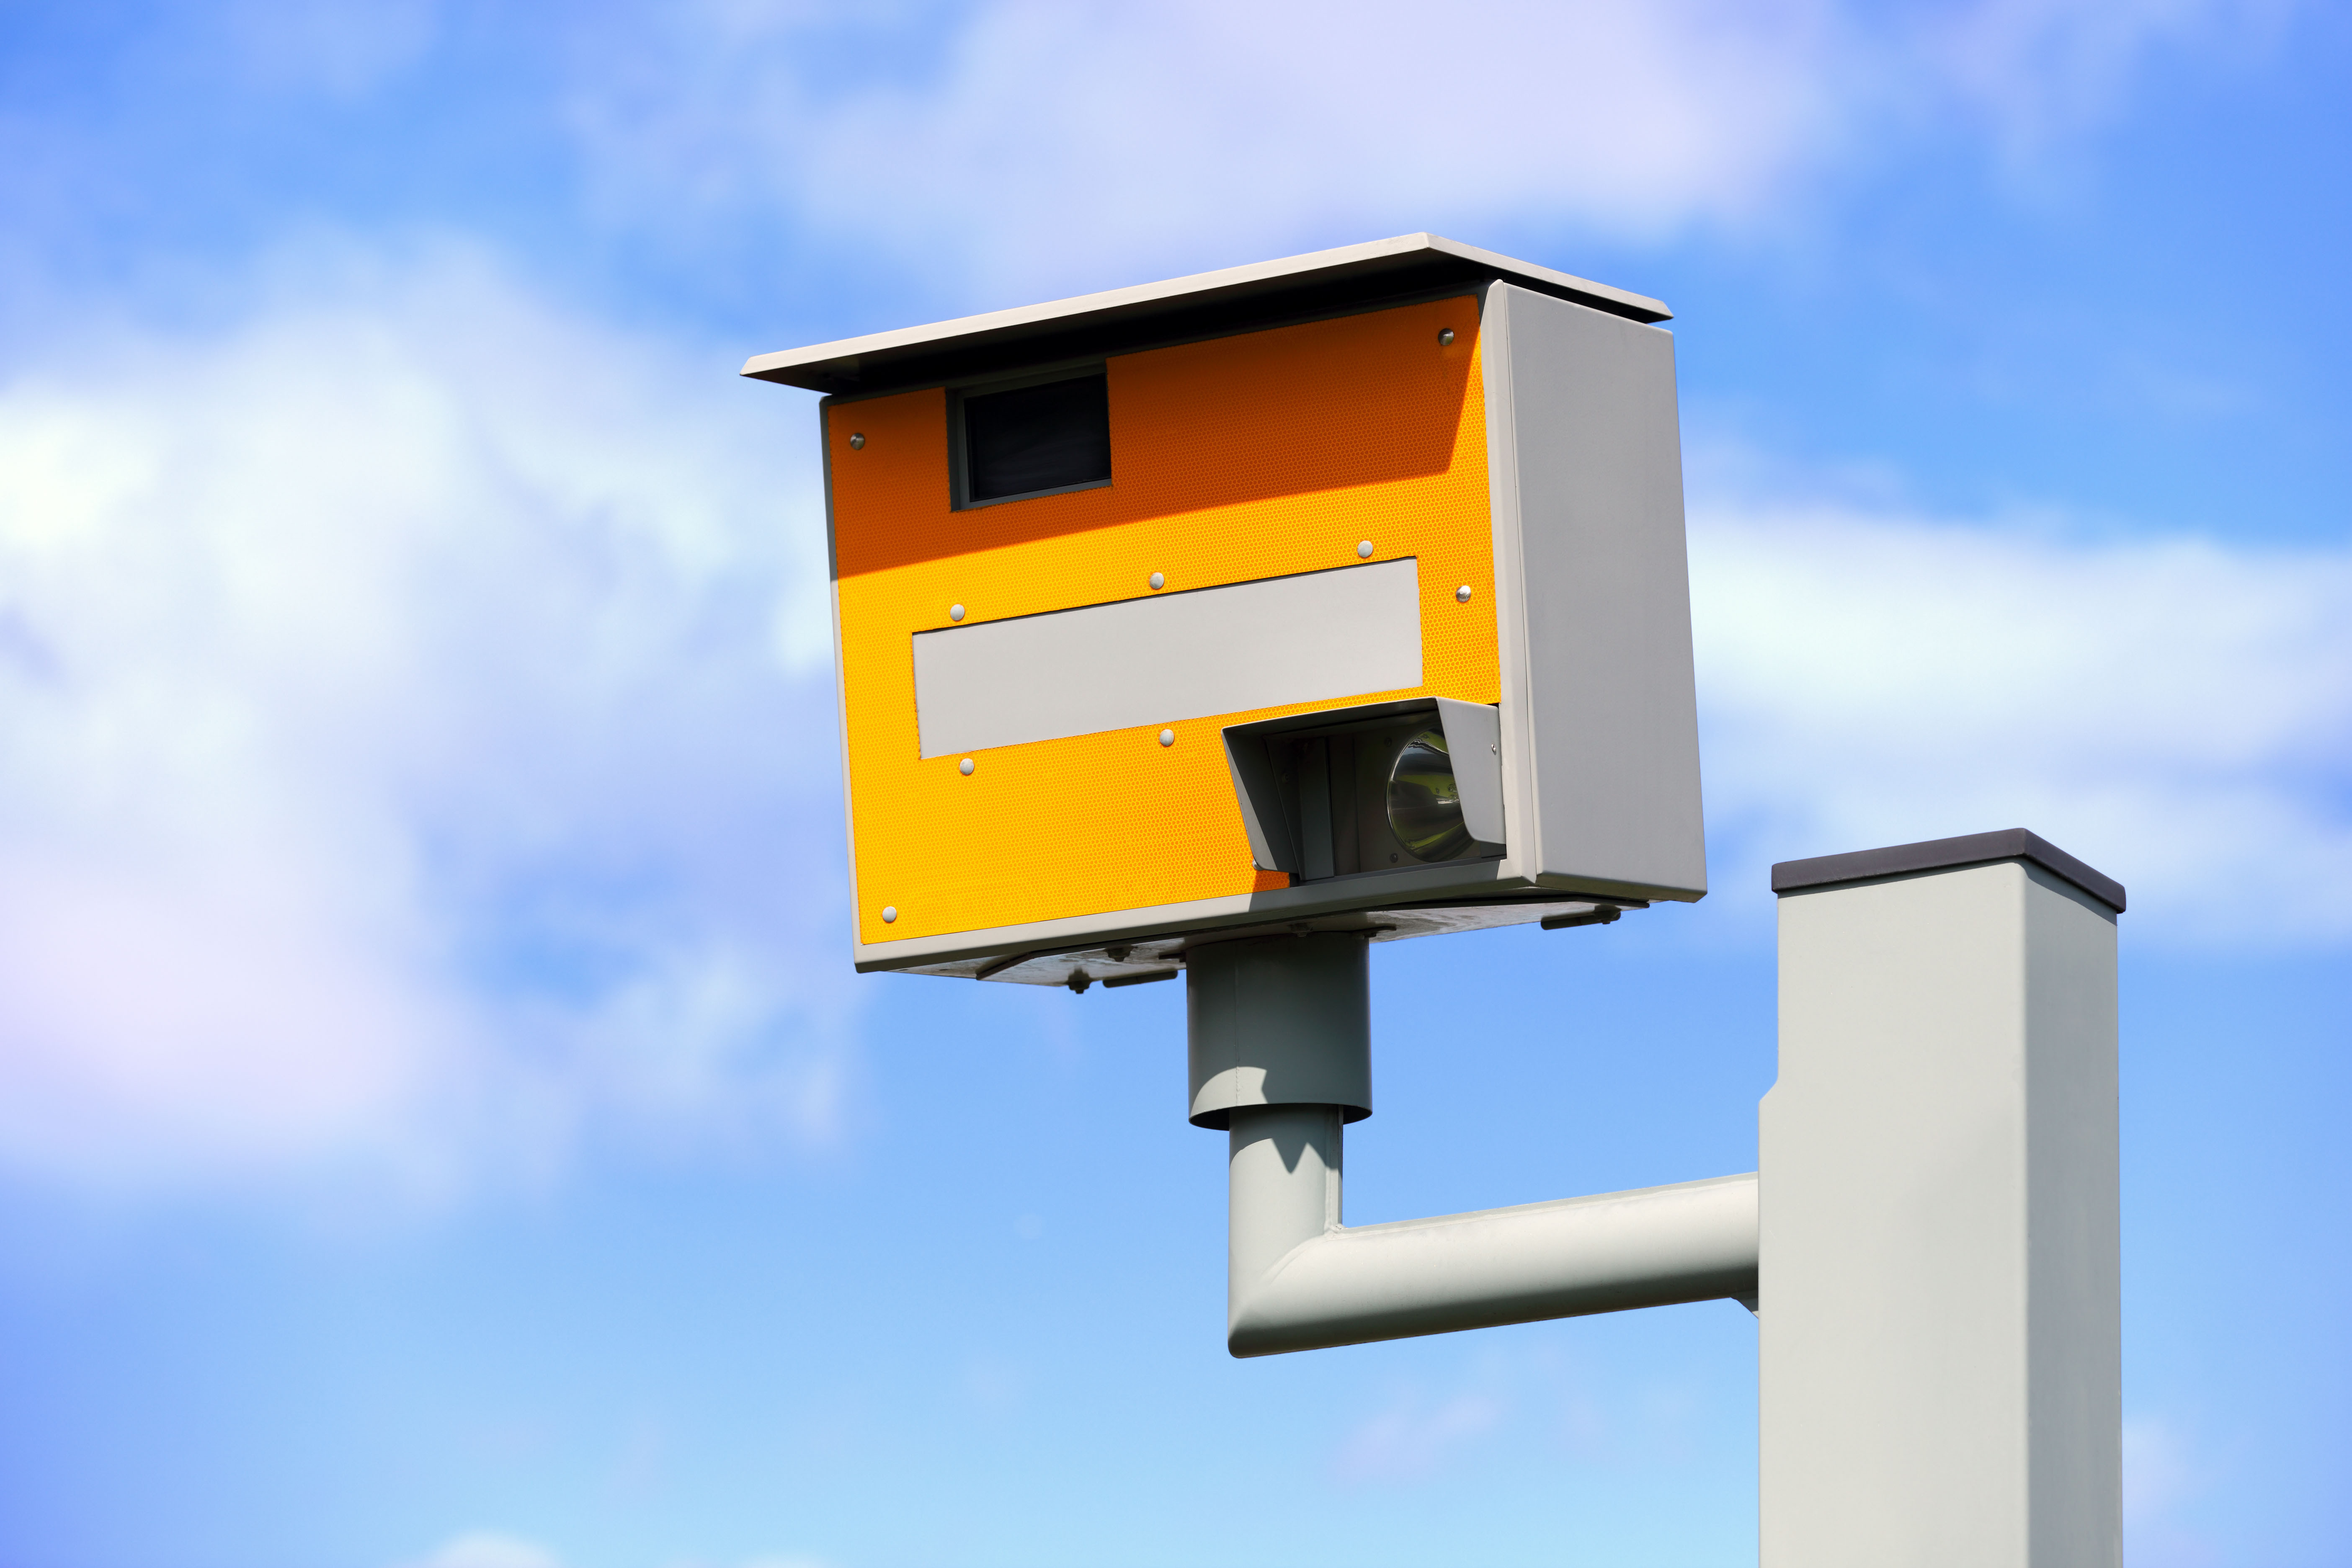 Brits can be hit with a maximum £2,500 fine for speeding on the motorway